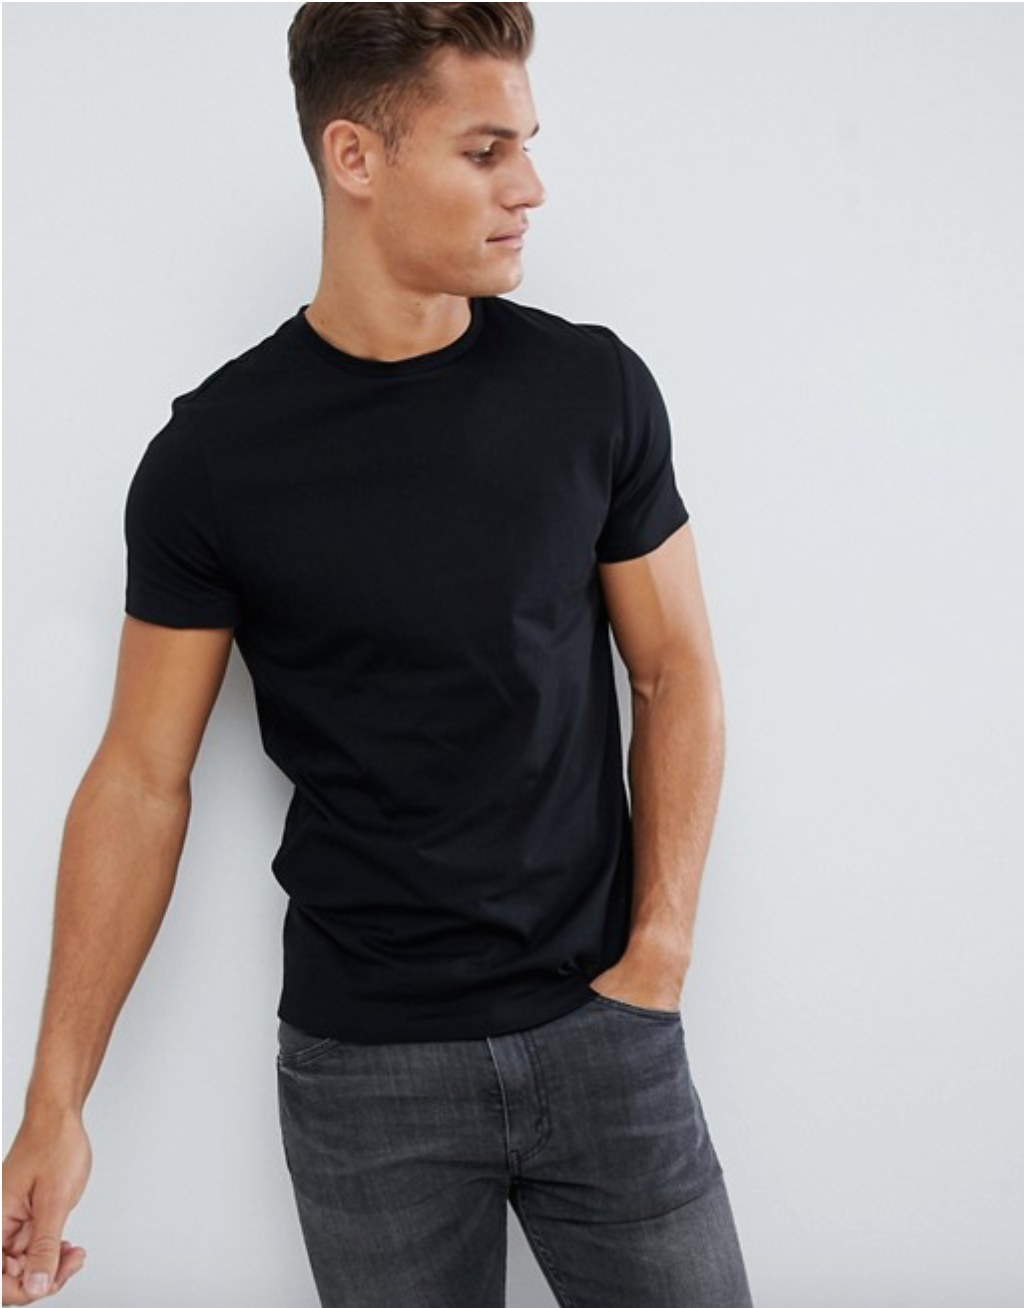 Men's Round Neck Tshirts